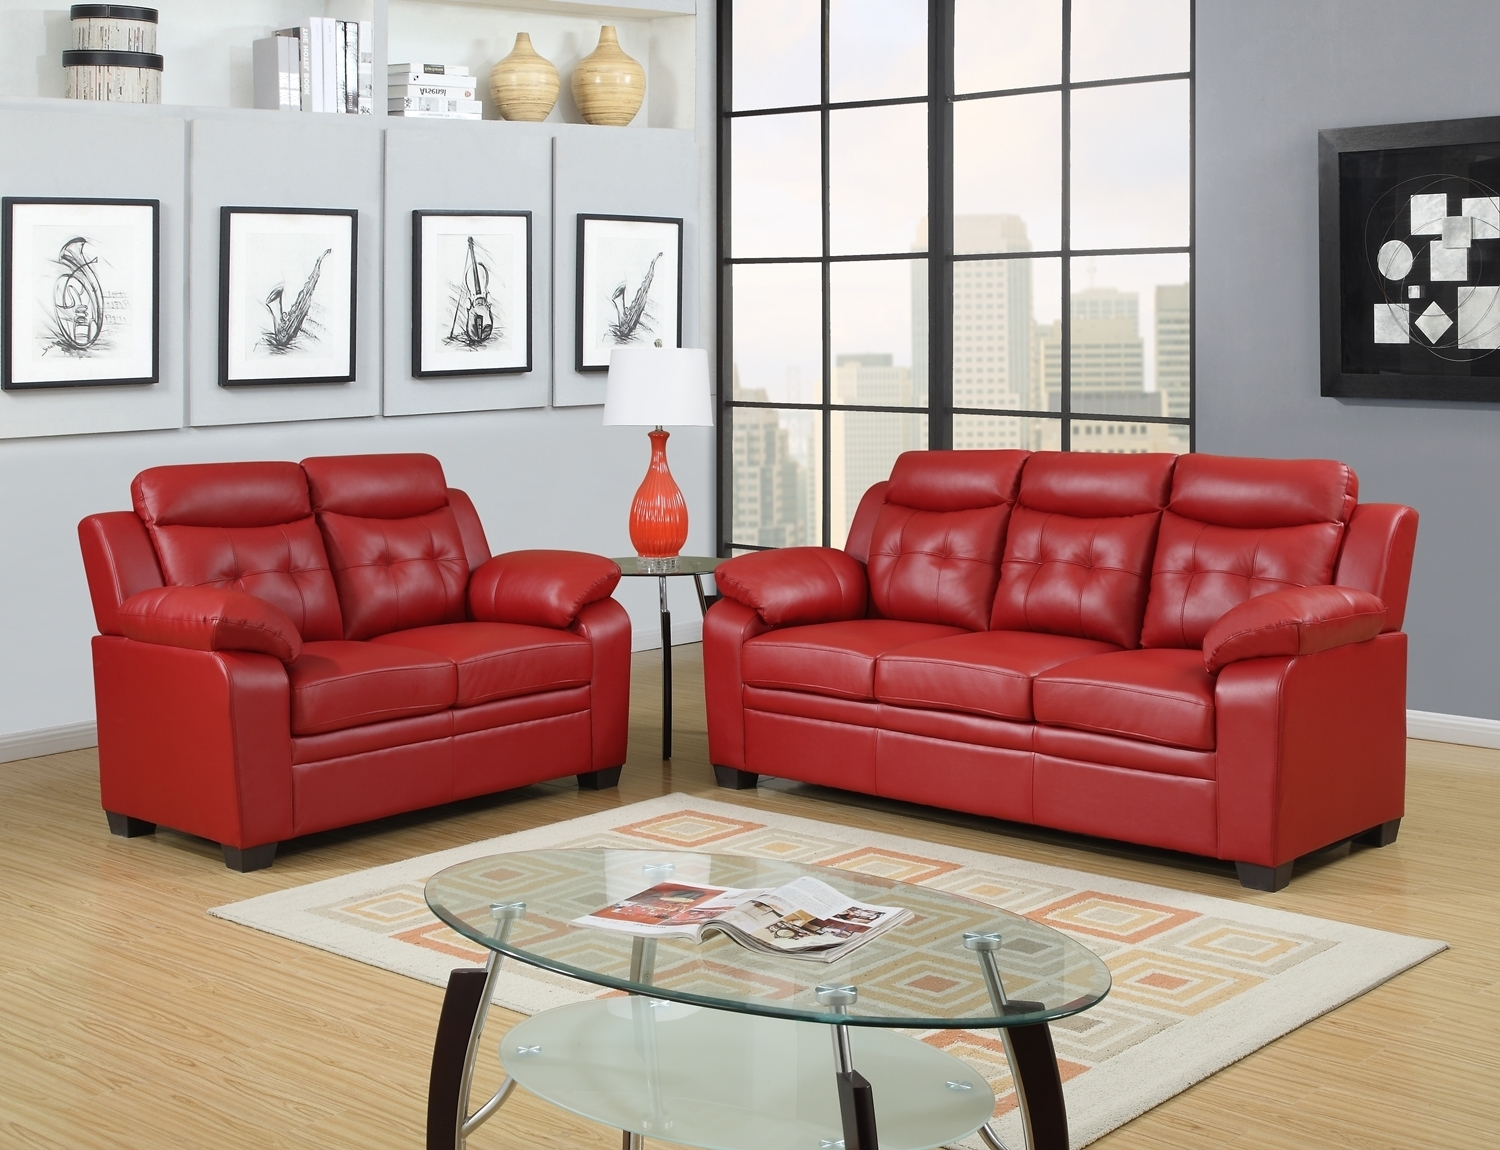 Remarkable Red Leather Sofas And Loveseats Pics Ideas - Surripui for Red Leather Couches and Loveseats (Image 9 of 15)